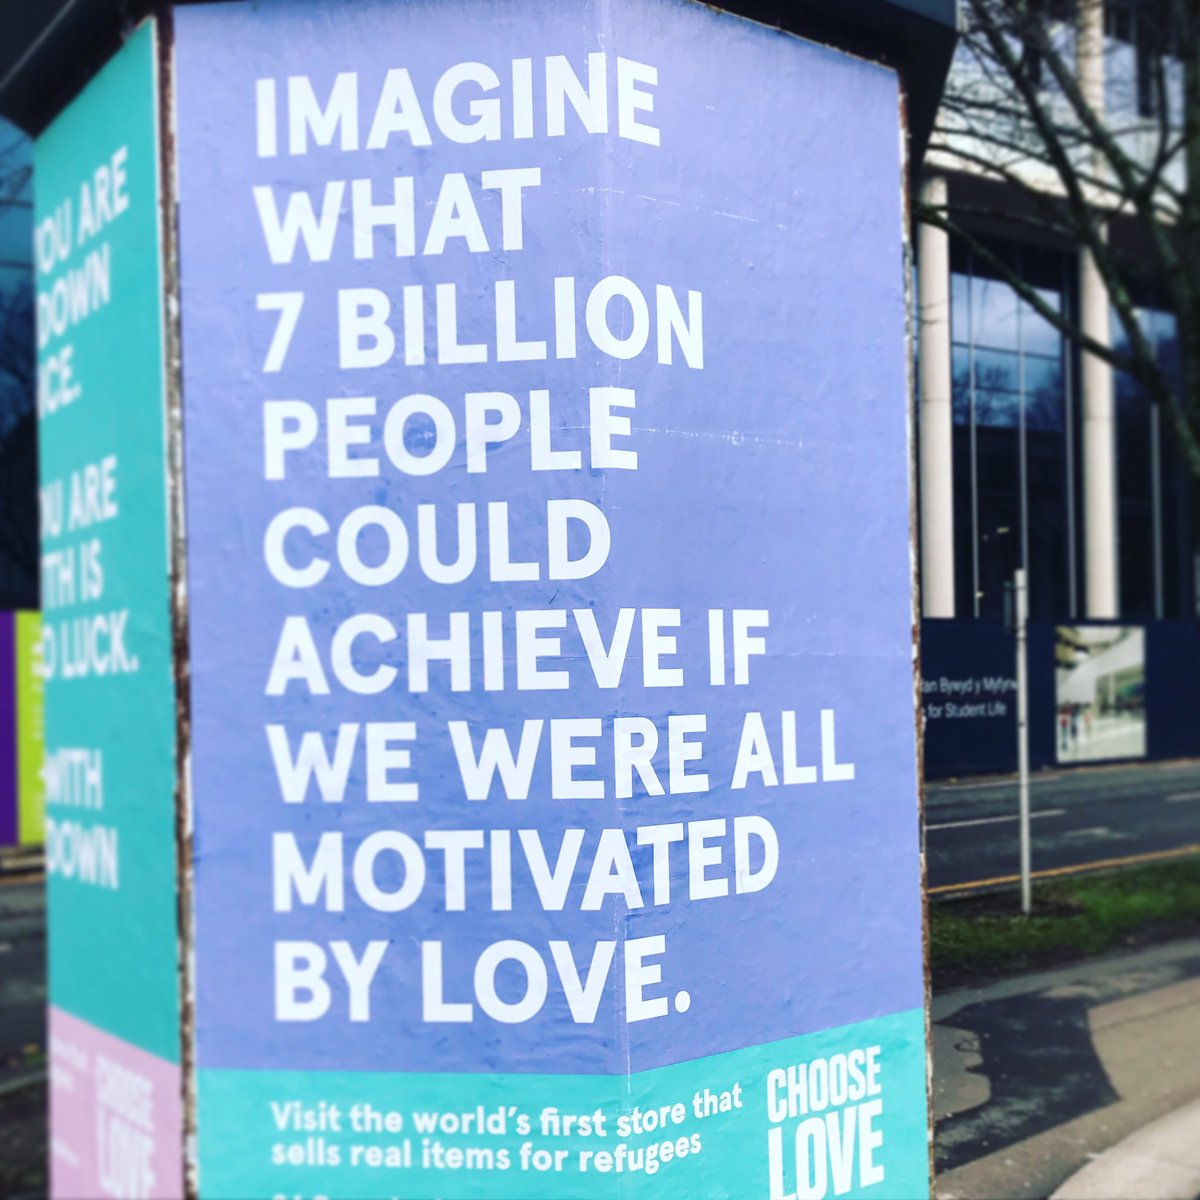 Replying to @MrTomBaker: Great question from @chooselove